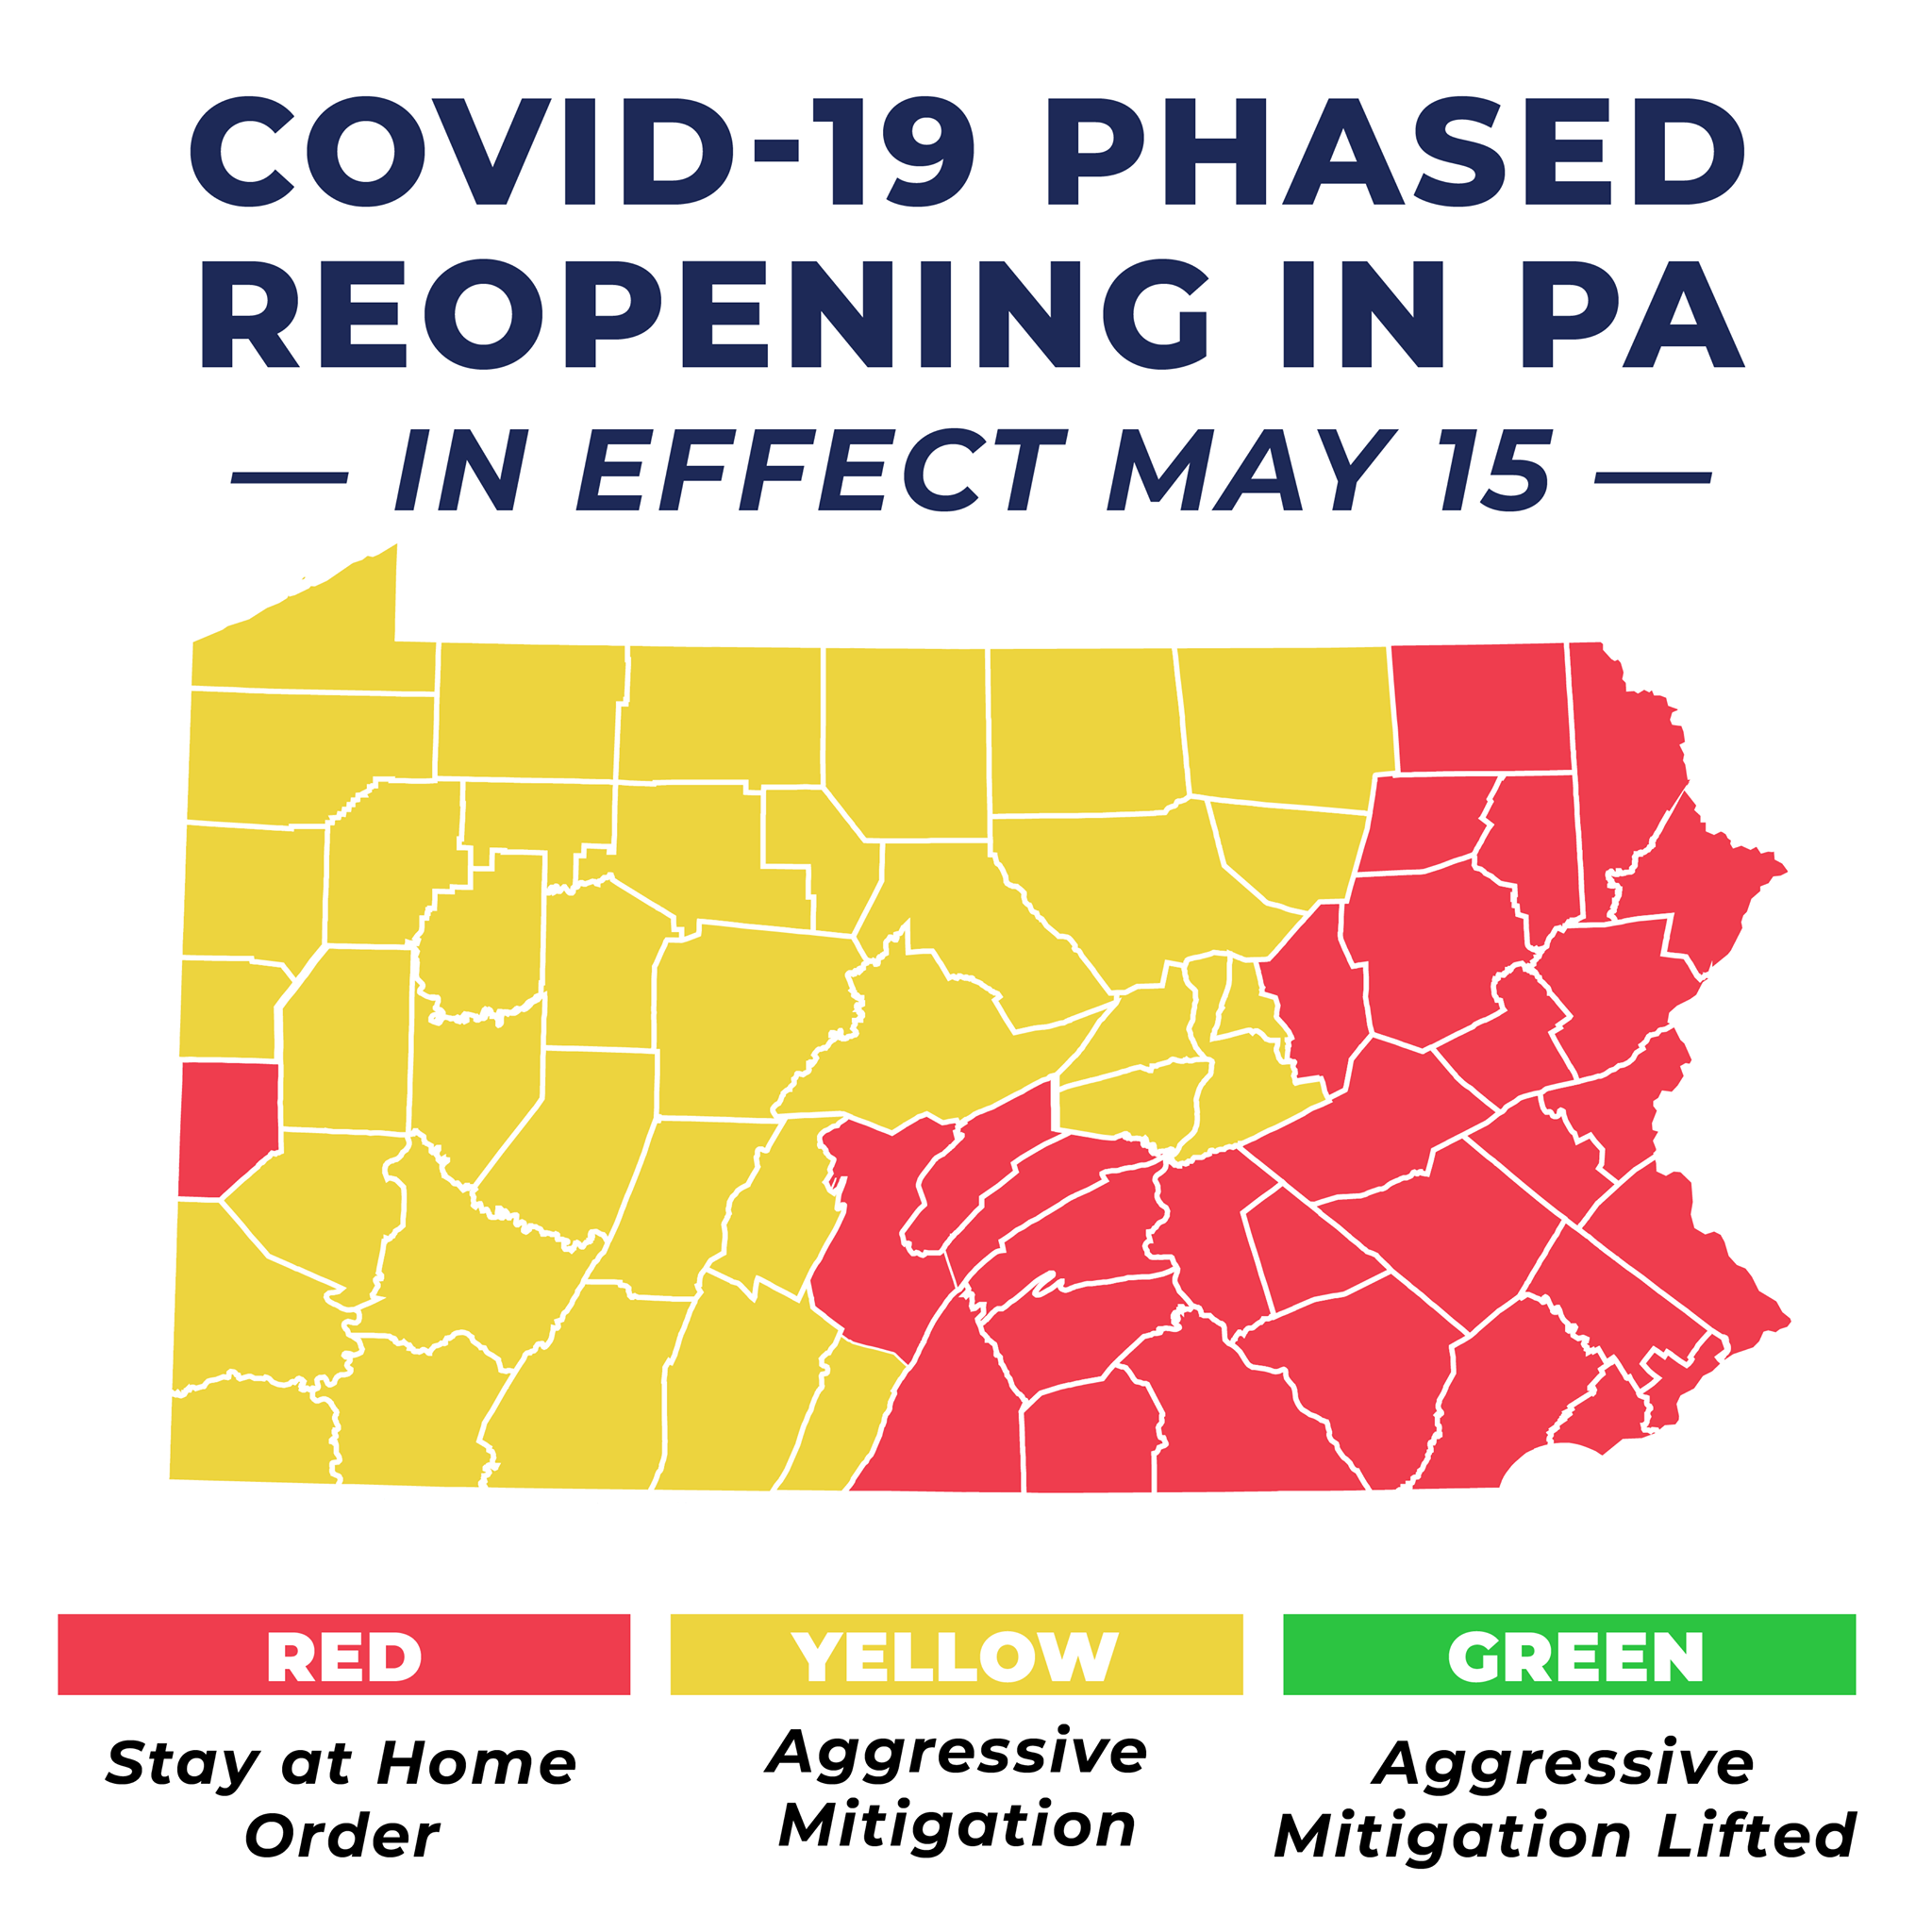 COVID-19 Phased Reopening: Child Care Providers in Yellow Counties